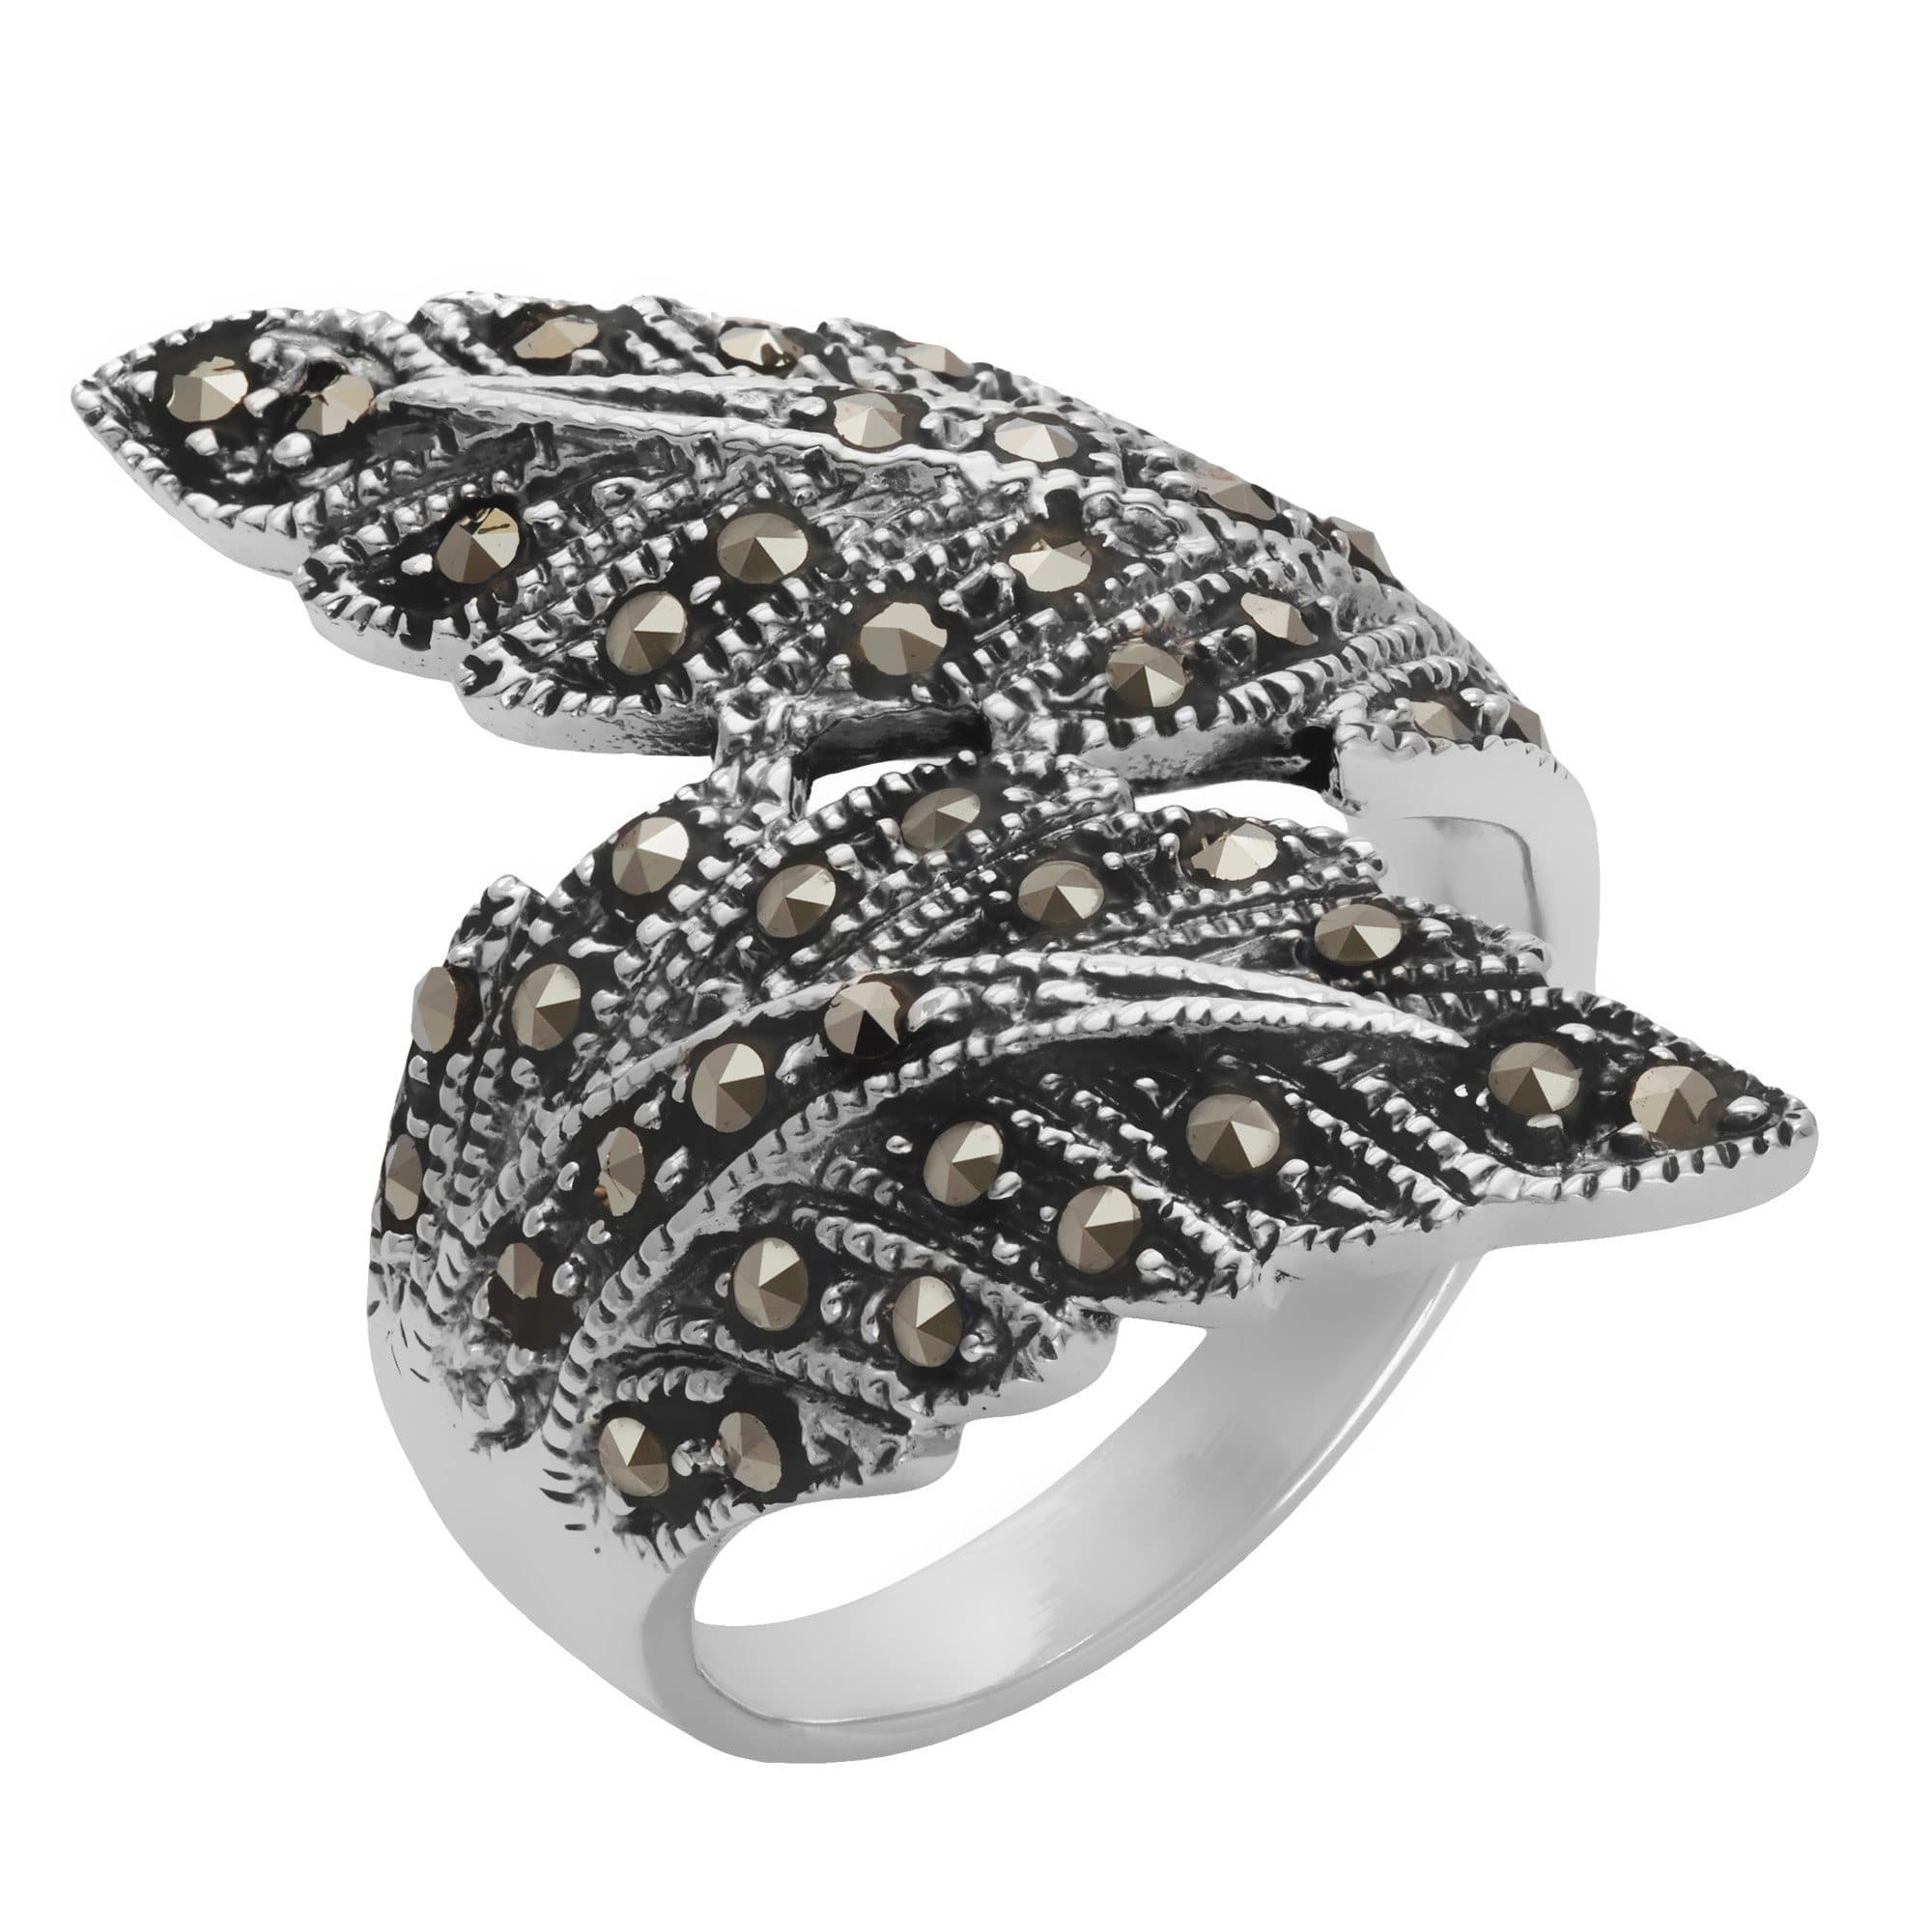 overstock beautitul handmade over thailand free heart jewelry orders on watches product sterling shipping knot marcasite rings ring silver